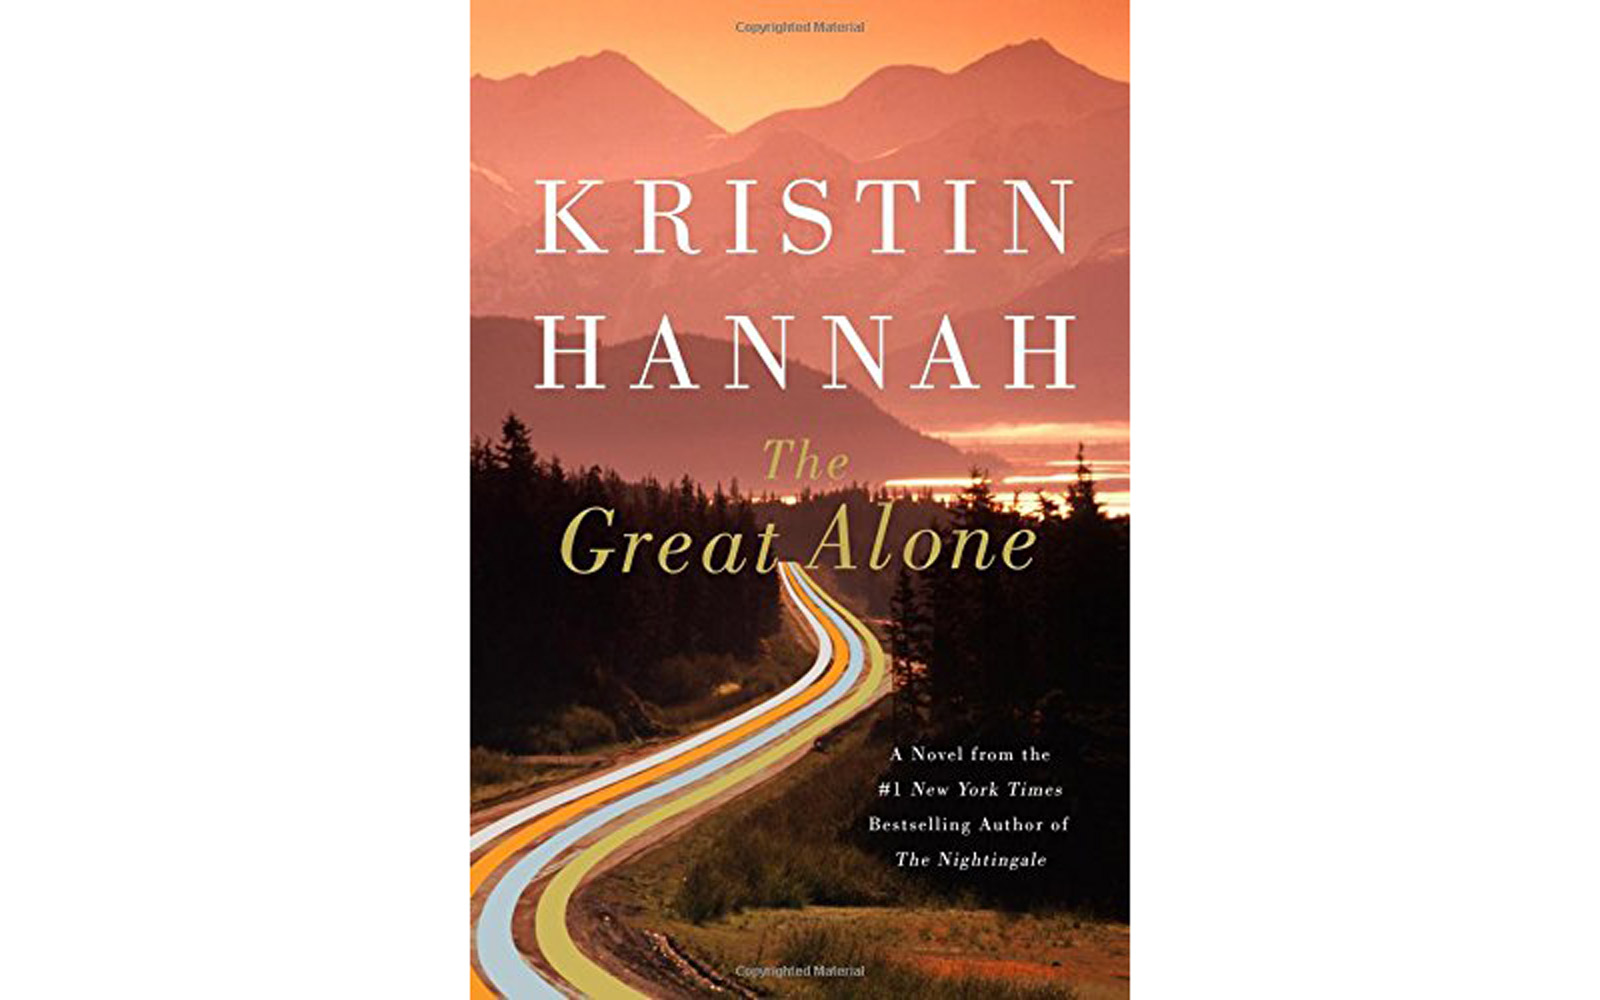 'The Great Alone' by Kristin Hannah